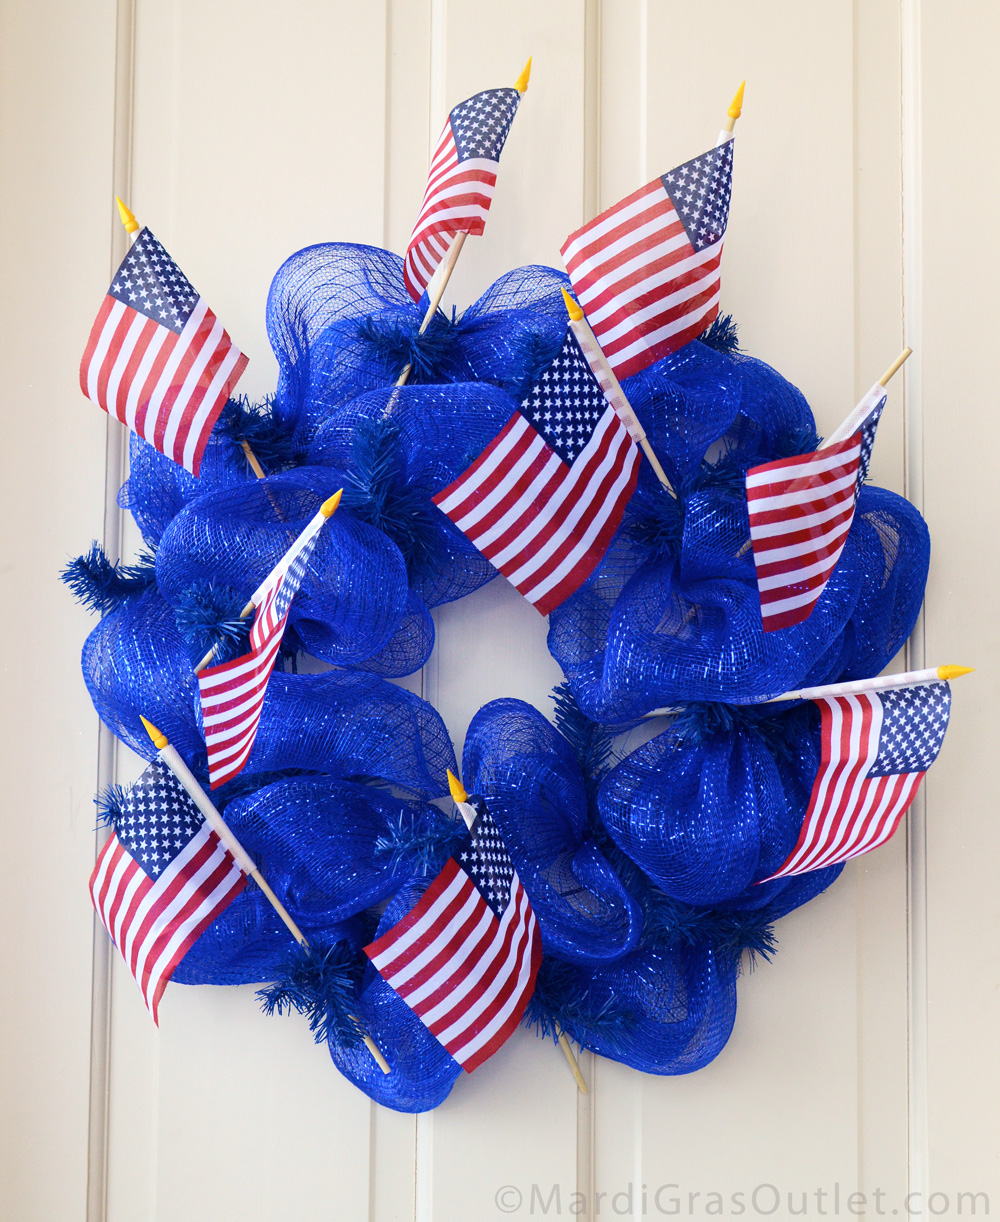 Party ideas by mardi gras outlet patriotic wreath tutorial with deco mesh patriotic red white blue memorial day wreath wreath how baditri Images